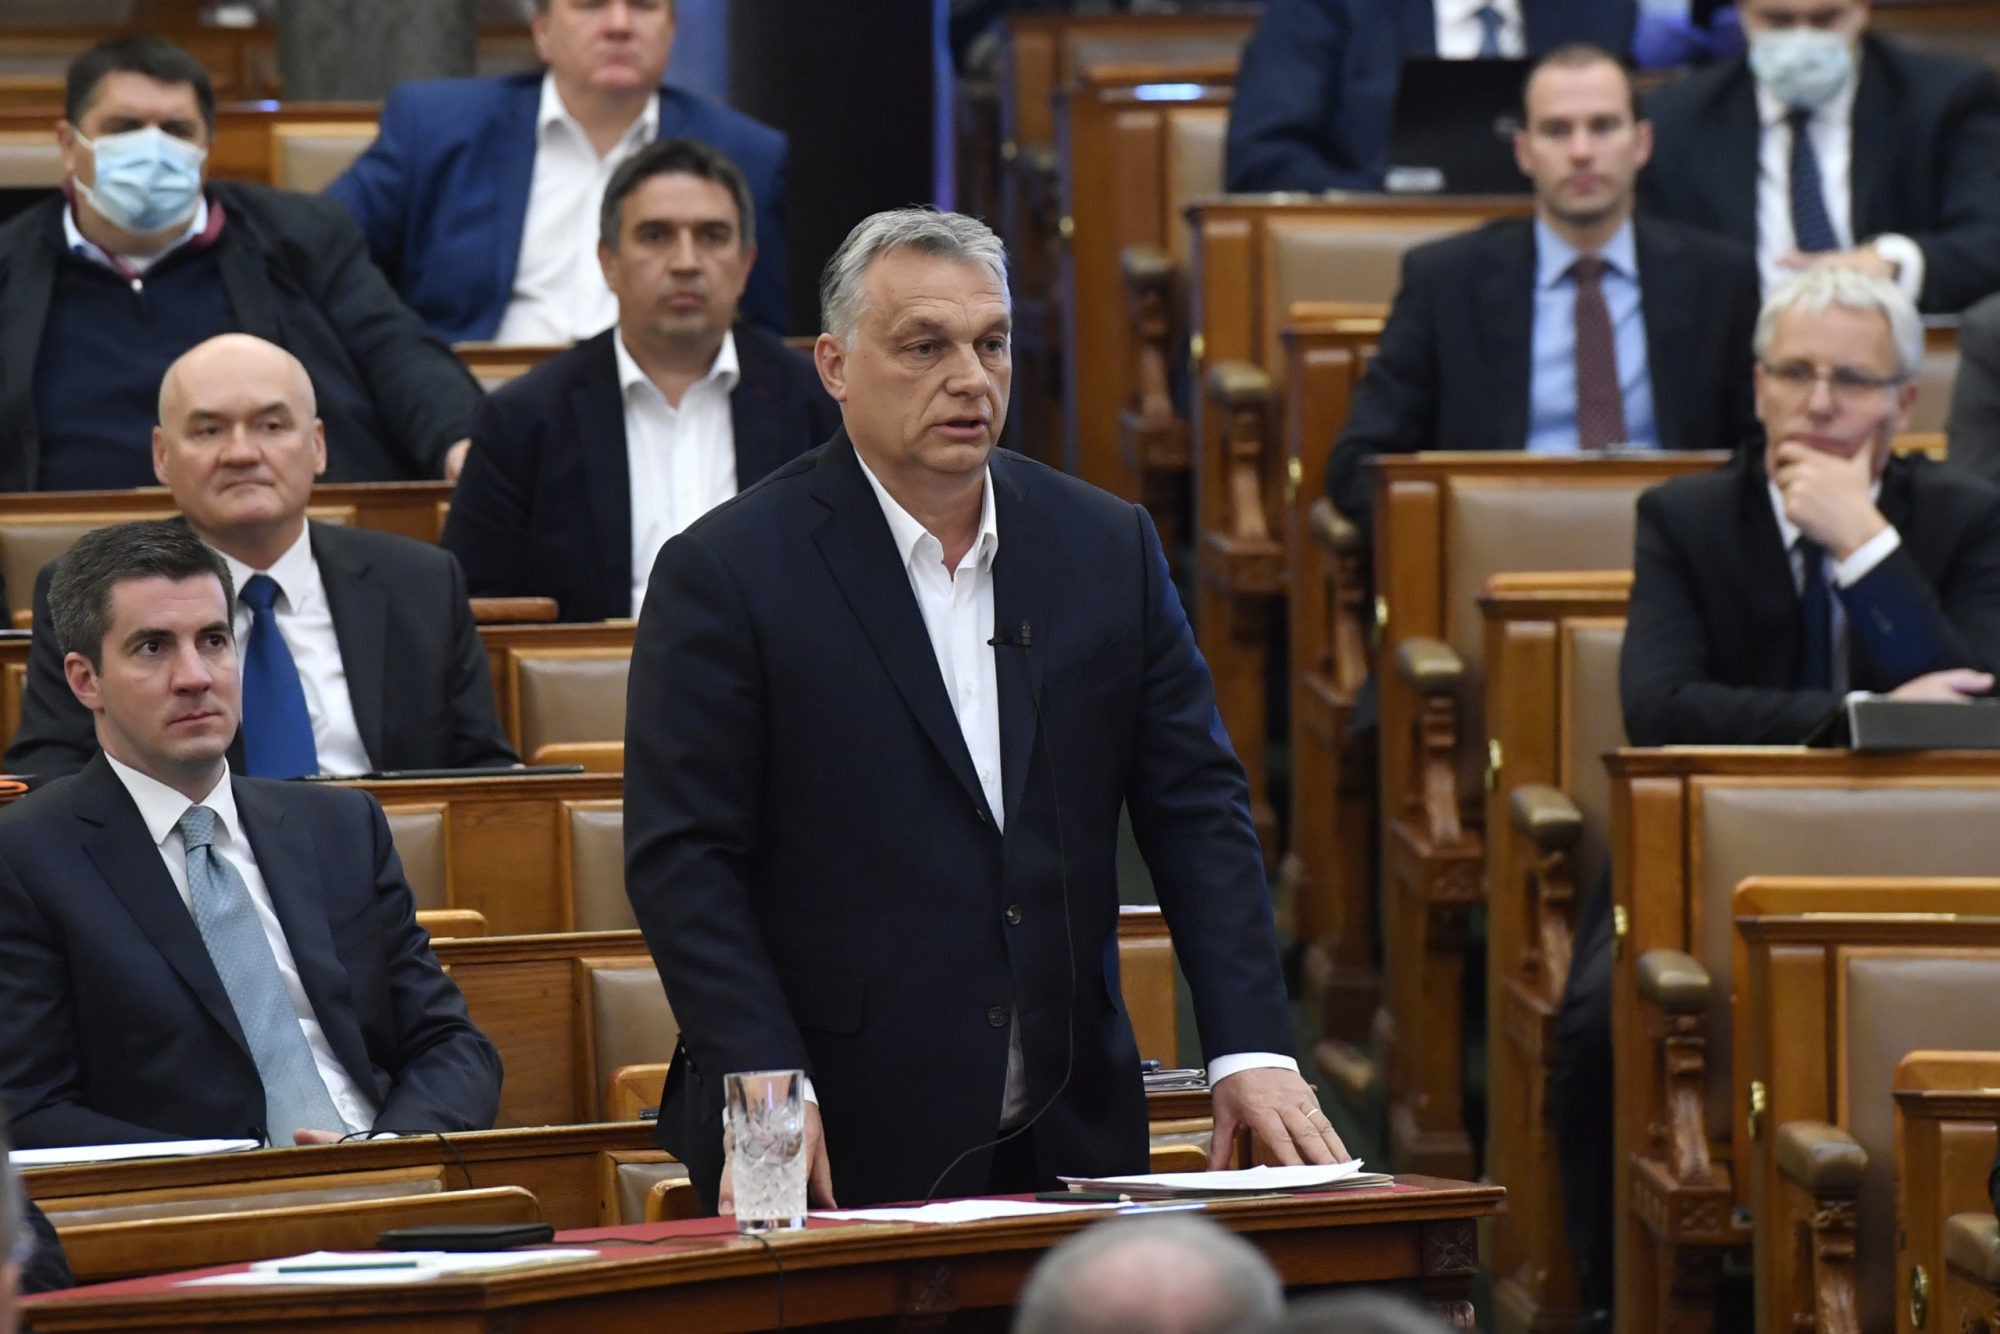 orban-parlament-scaled.jpg